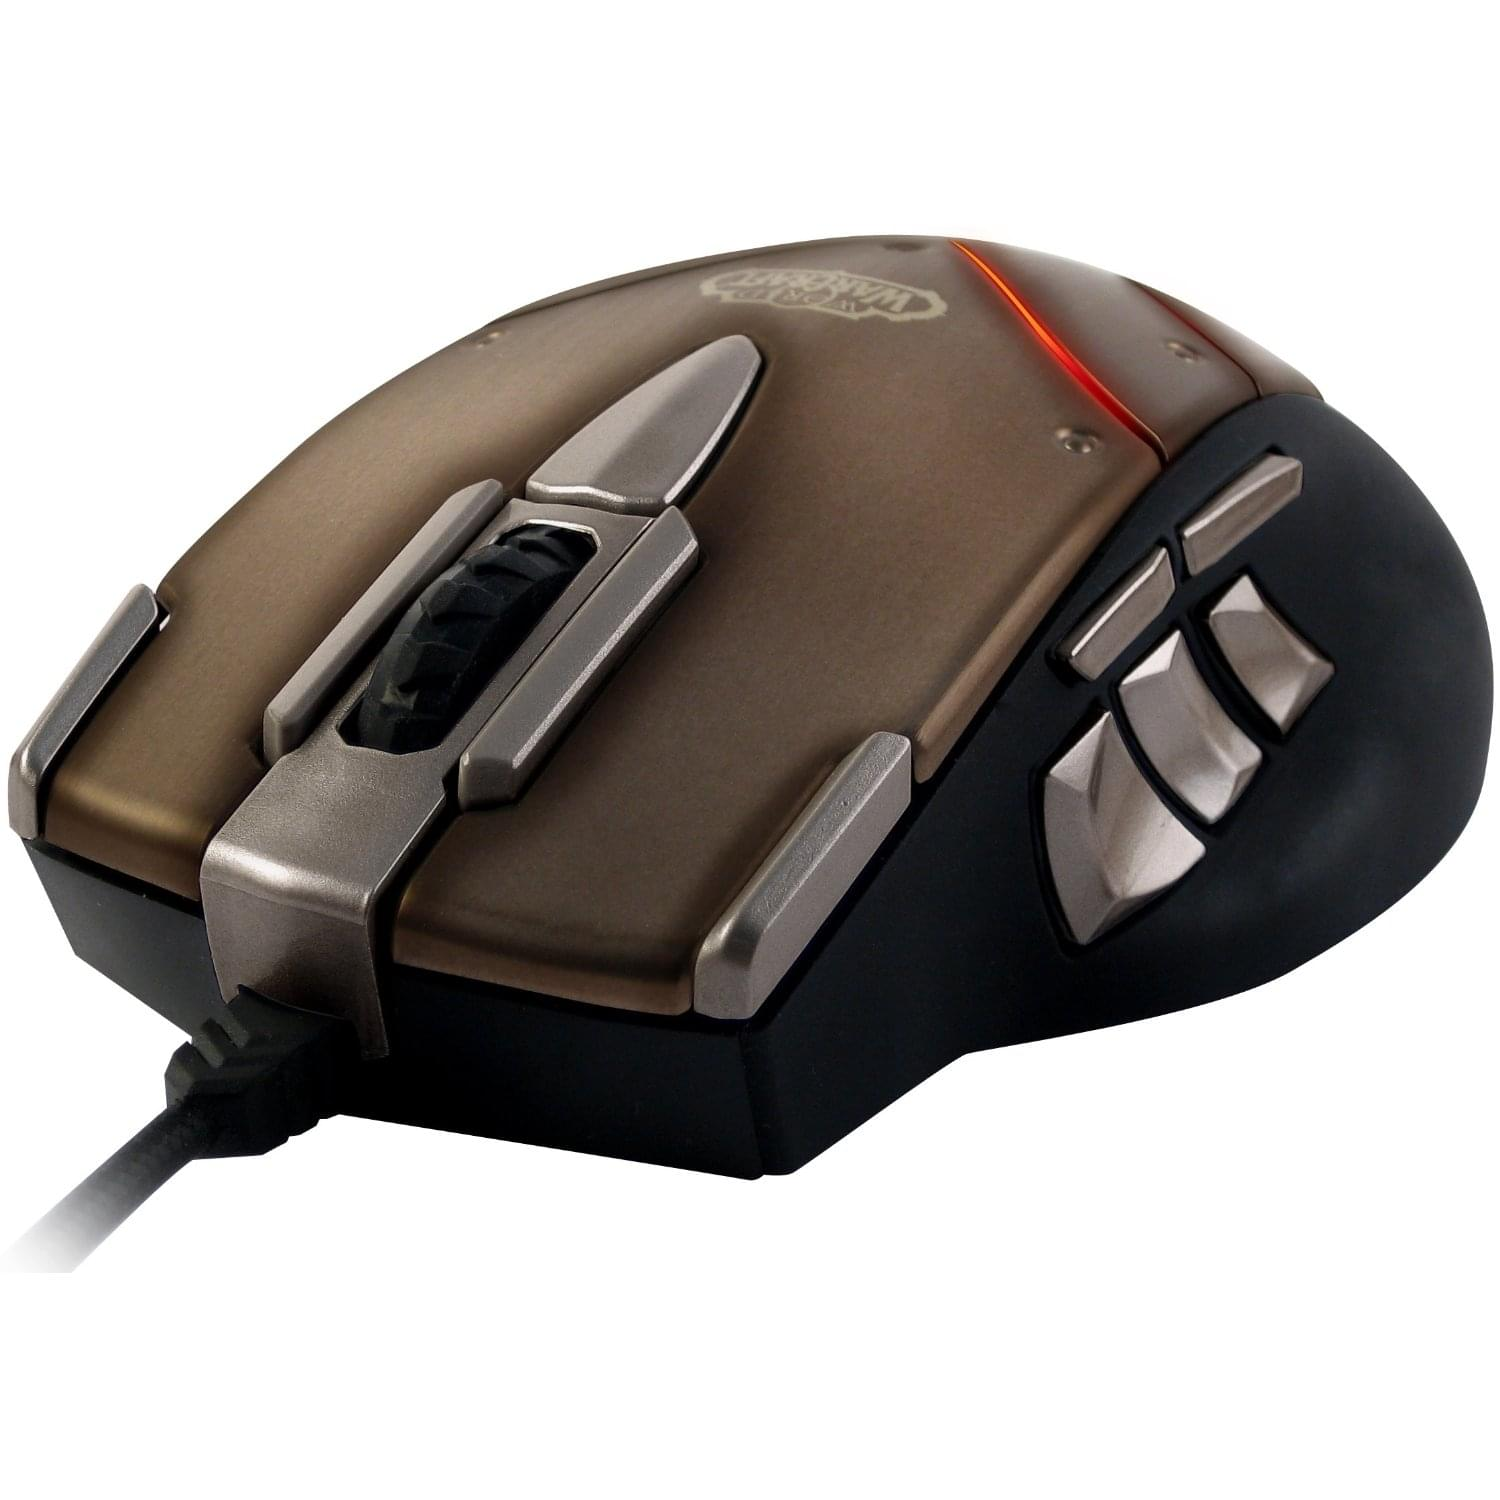 Steelseries World of Warcraft Cataclysm (82090) - Achat / Vente Souris PC sur Cybertek.fr - 0